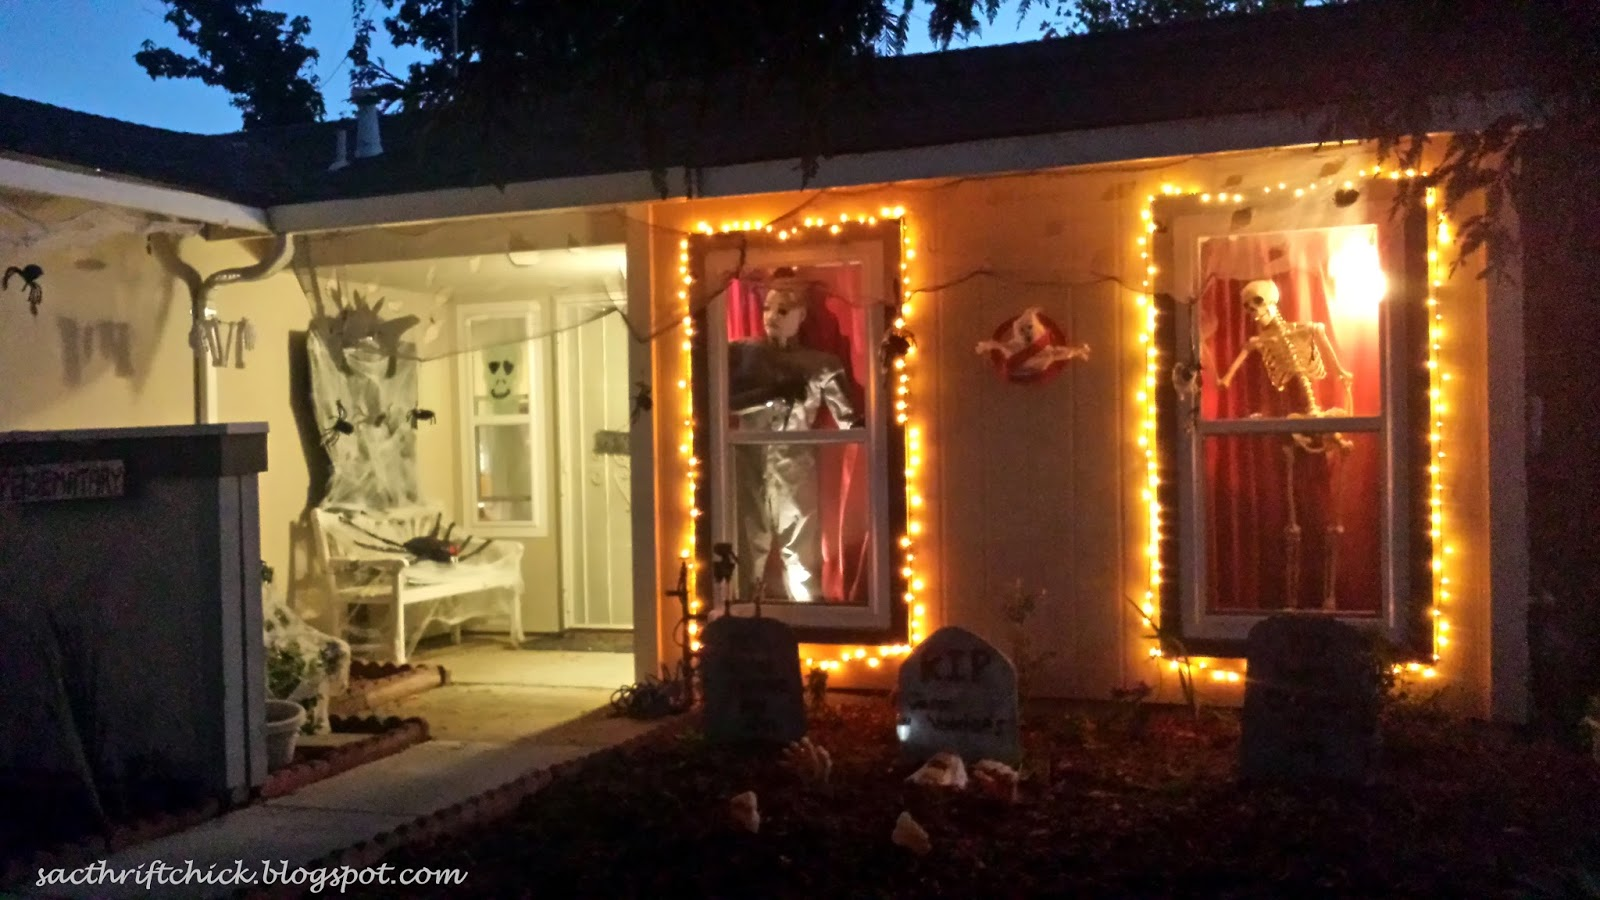 diy scary movie themed halloween decorations nightmare before christmas ghostbusters friday the 13th and more